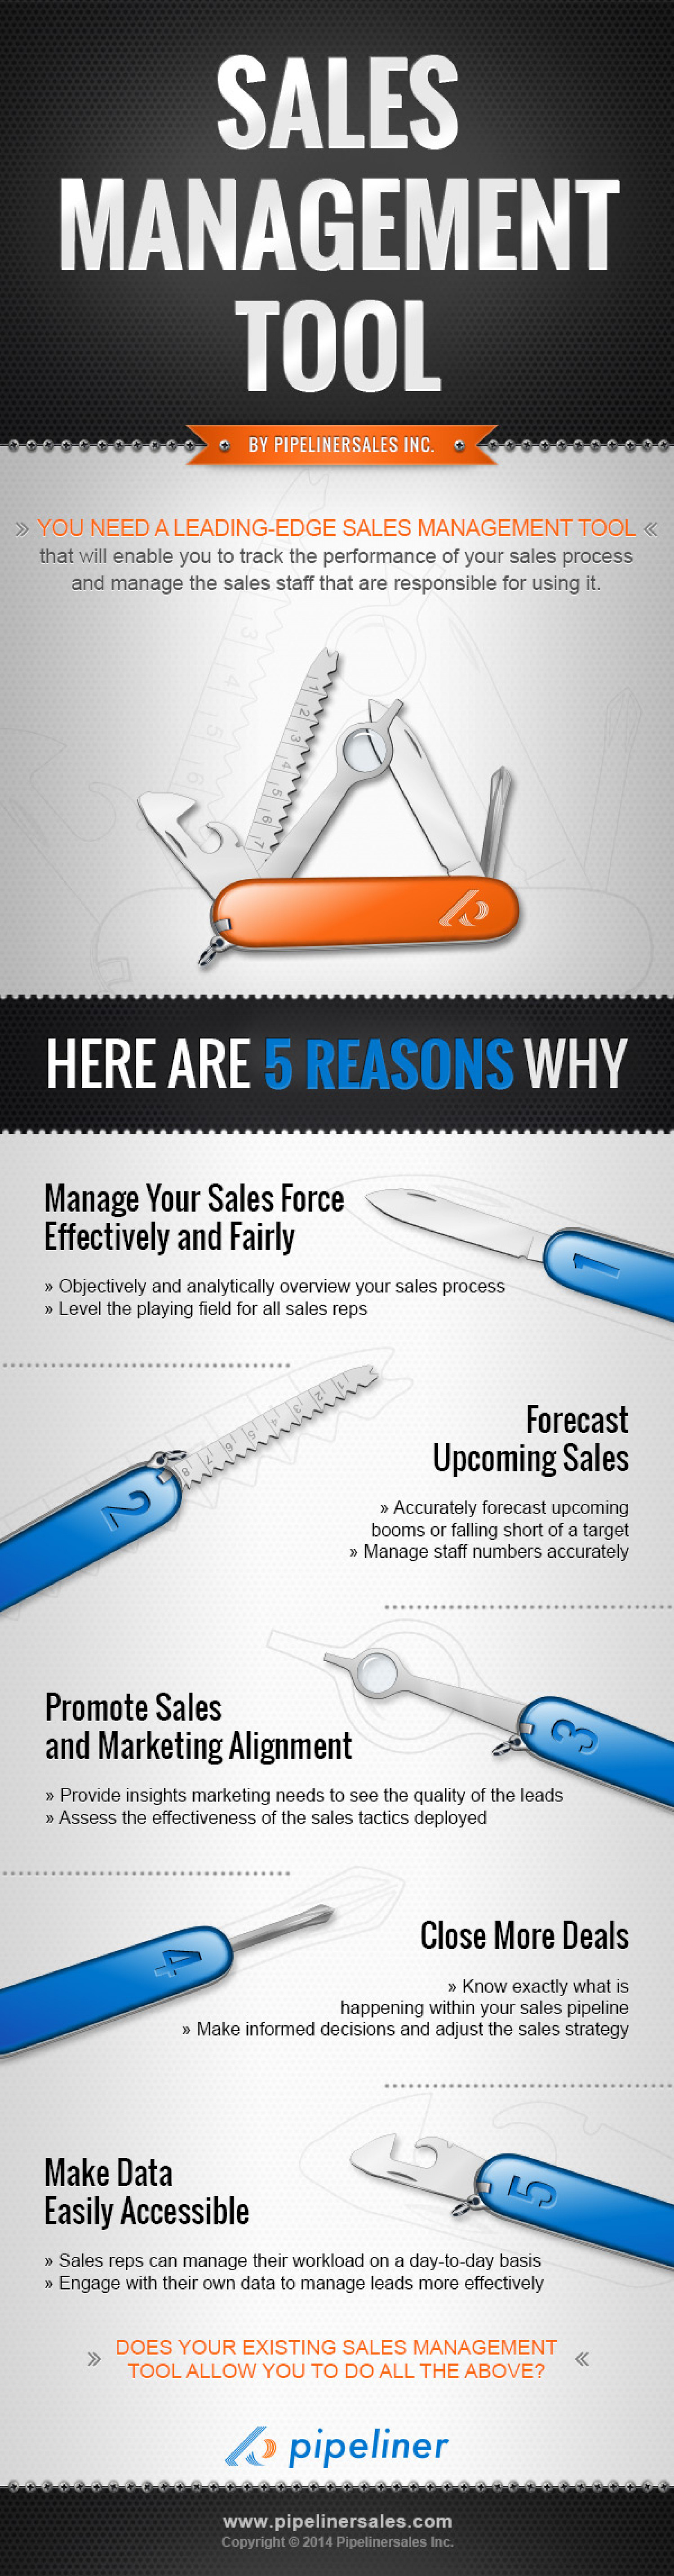 Sales Management Tool Infographic